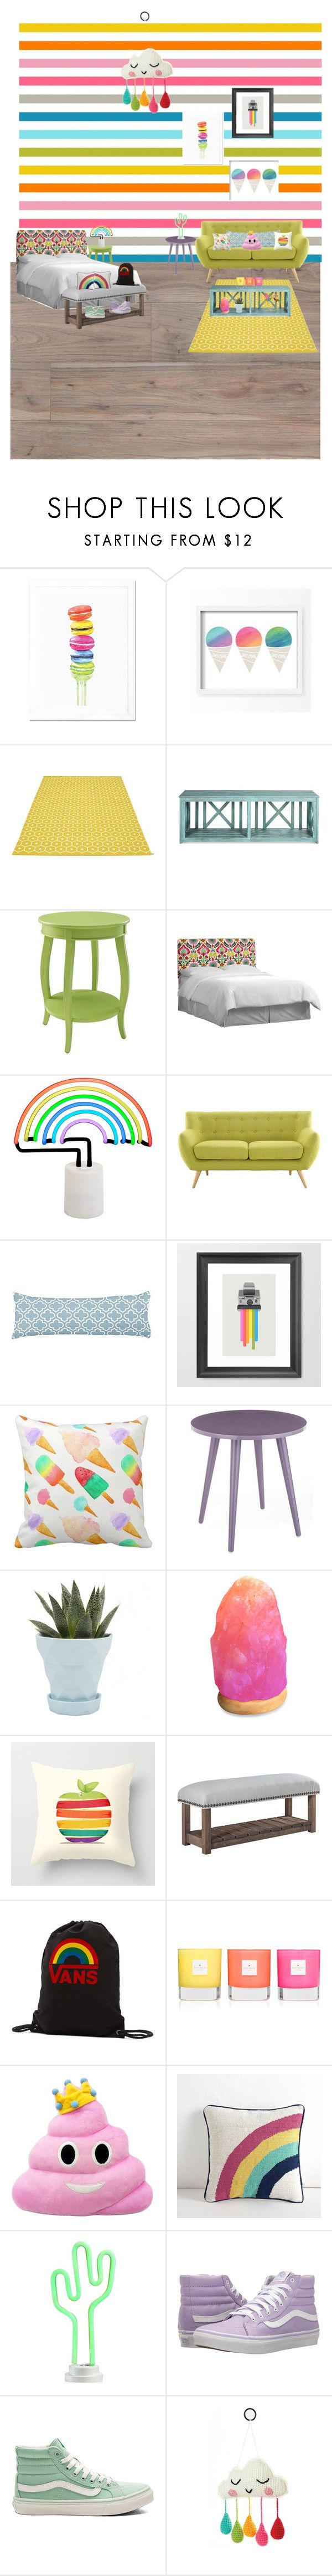 """THE RAINBOW-BedRoom🌈"" by noofnawaf ❤ liked on Polyvore featuring interior, interiors, interior design, home, home decor, interior decorating, iCanvas, Lucy Darling, Pappelina and Powell"